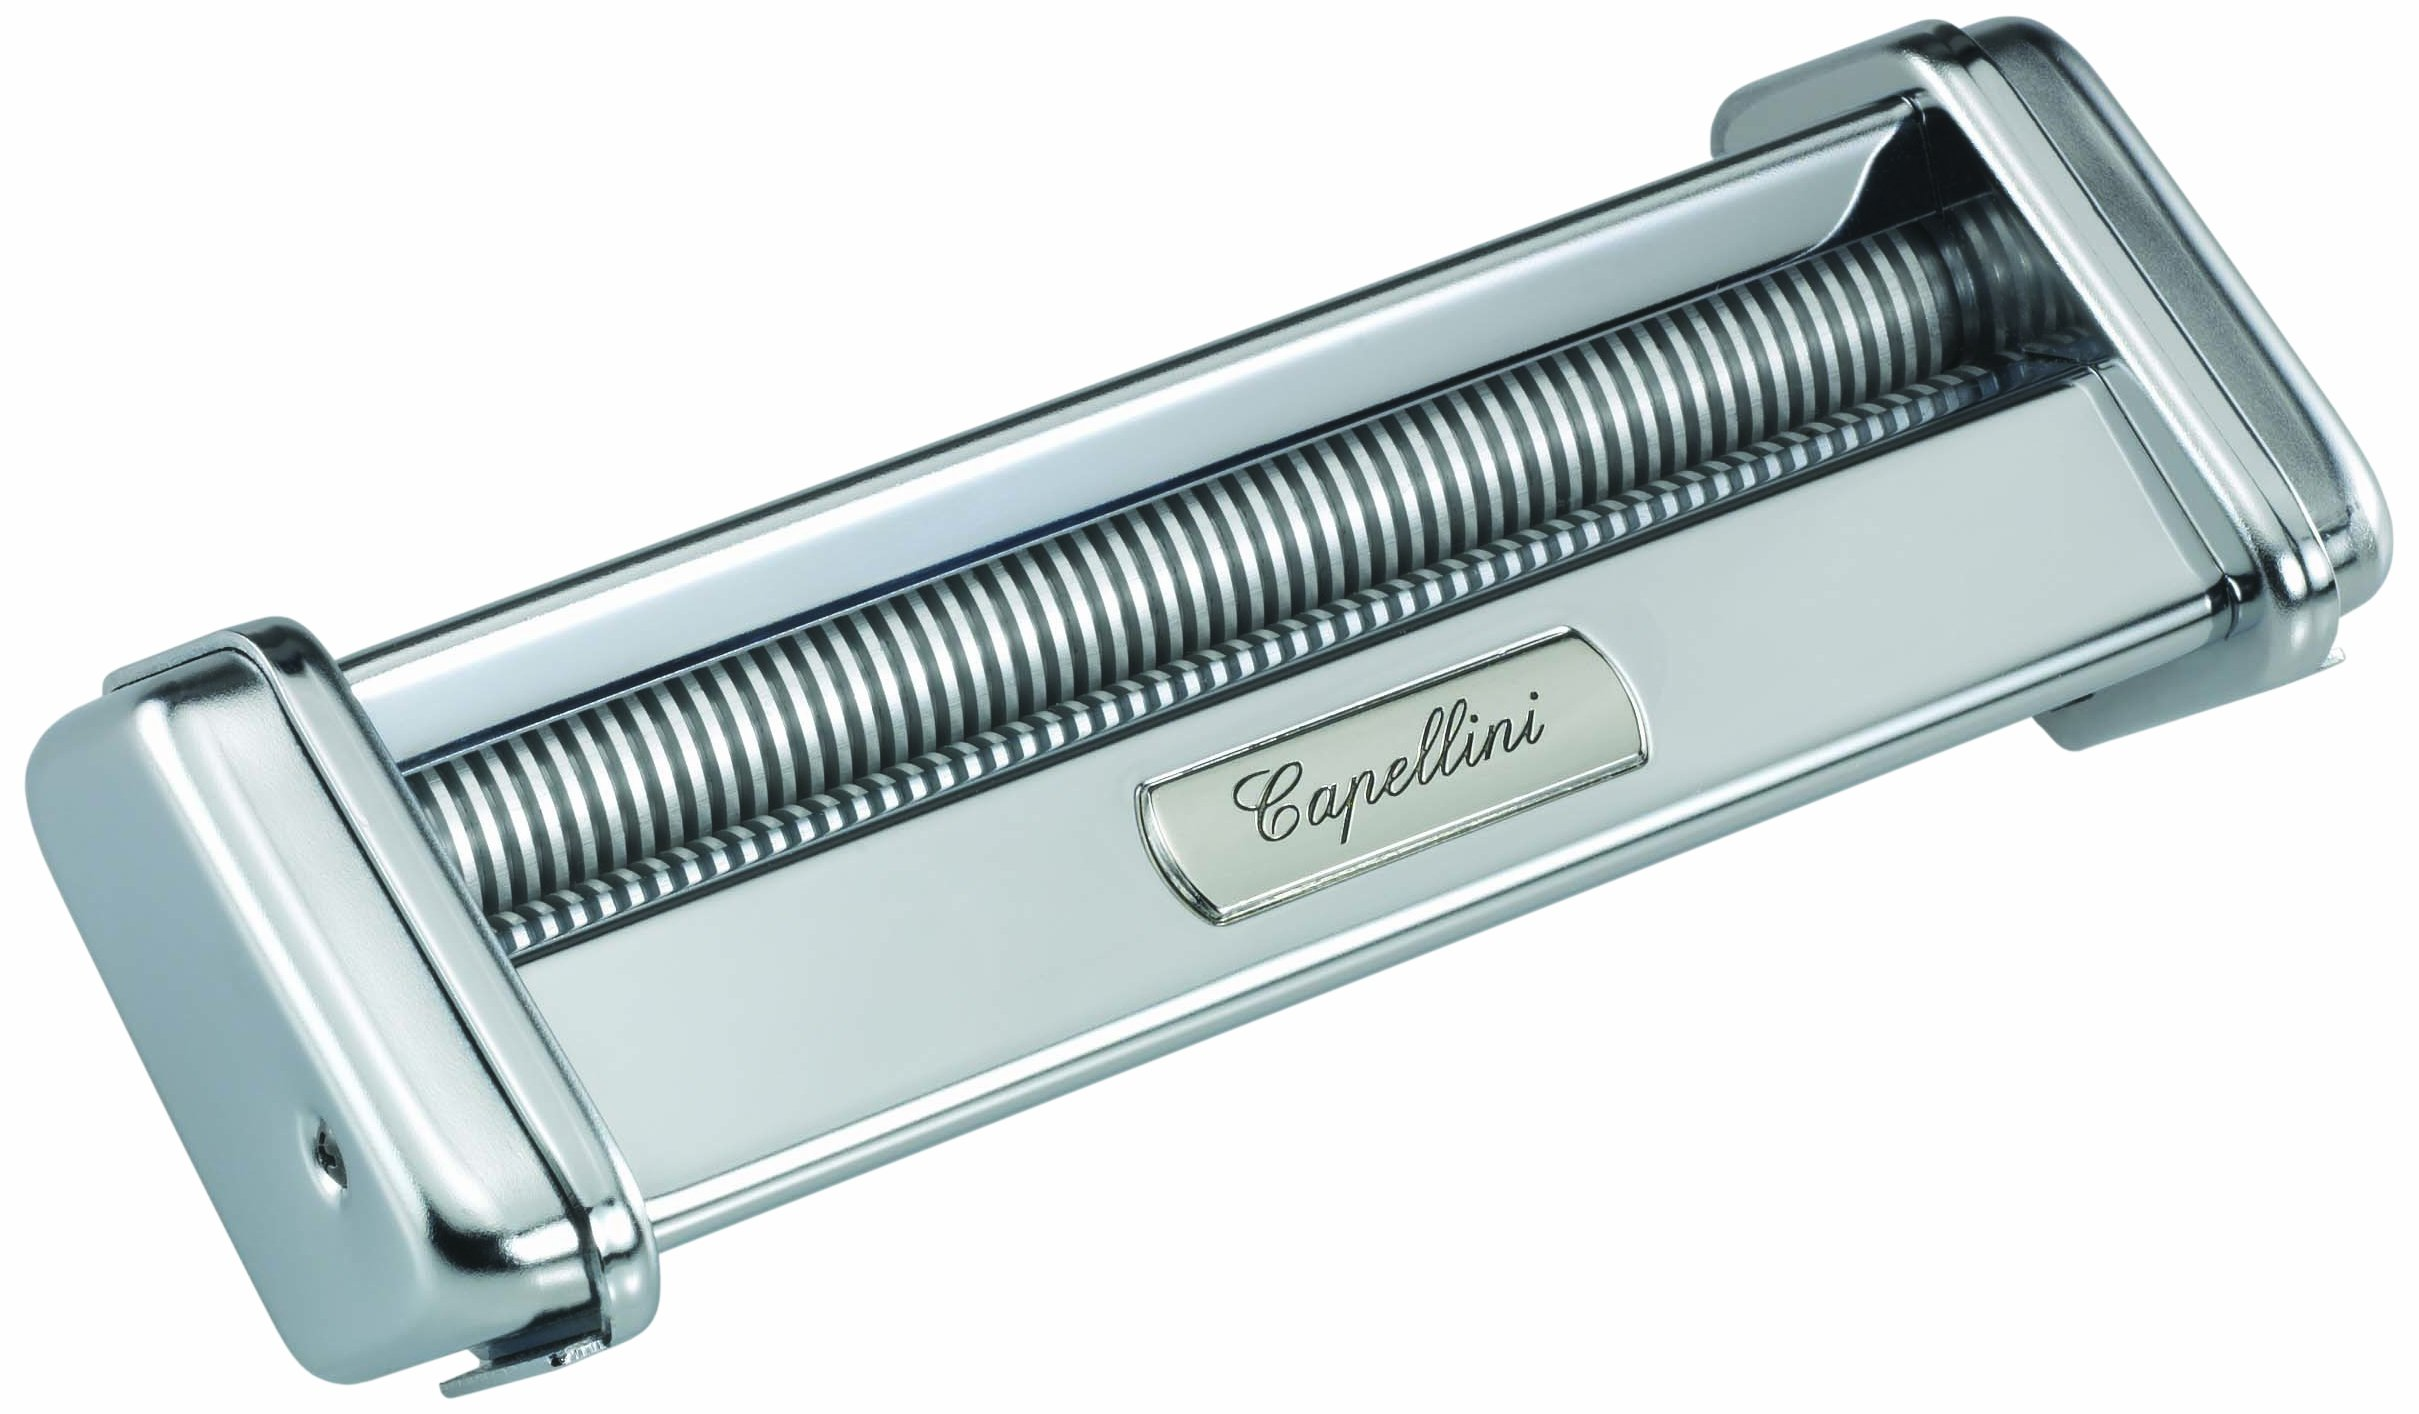 Marcato 073213 Pasta Cutter for Atlas 150 by Marcato